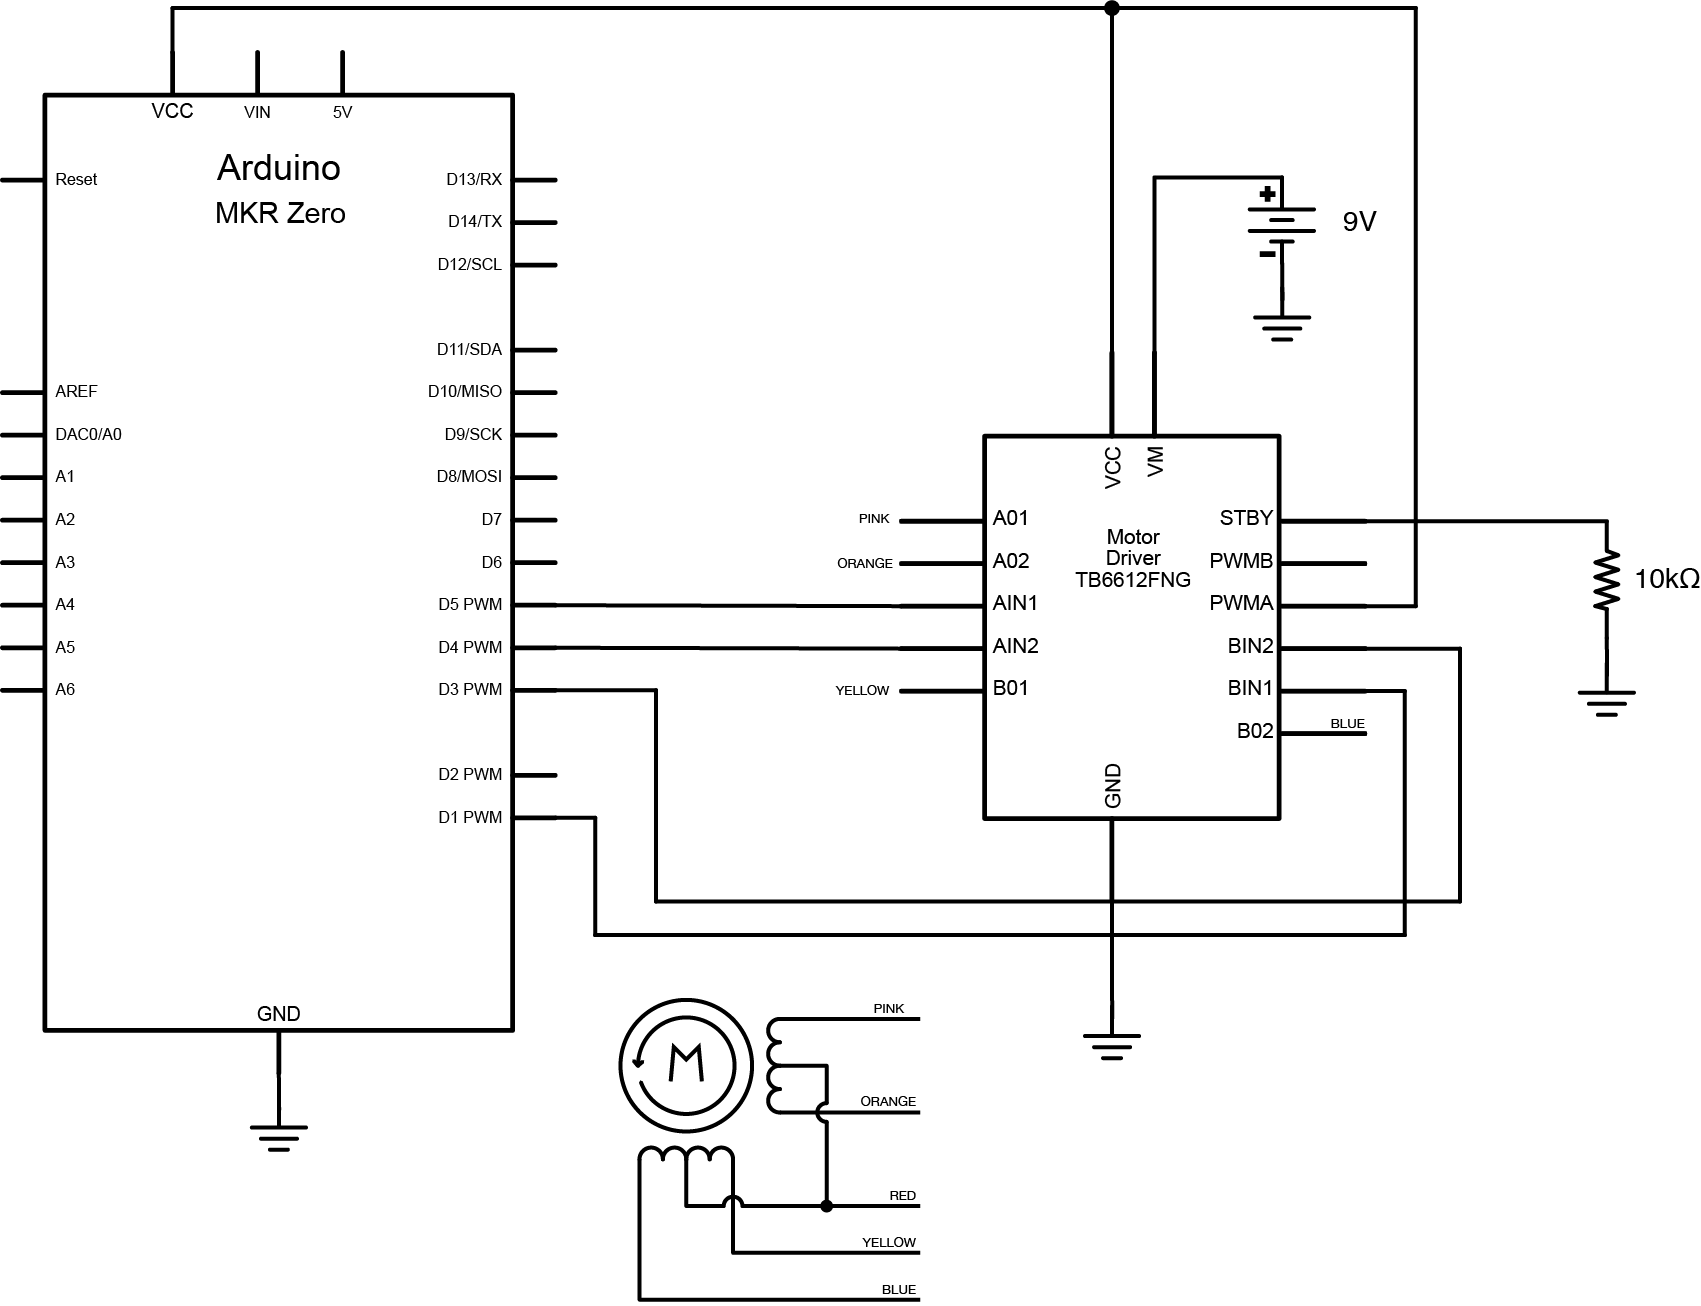 hight resolution of schematic of tb6612 h bridge controlling a stepper